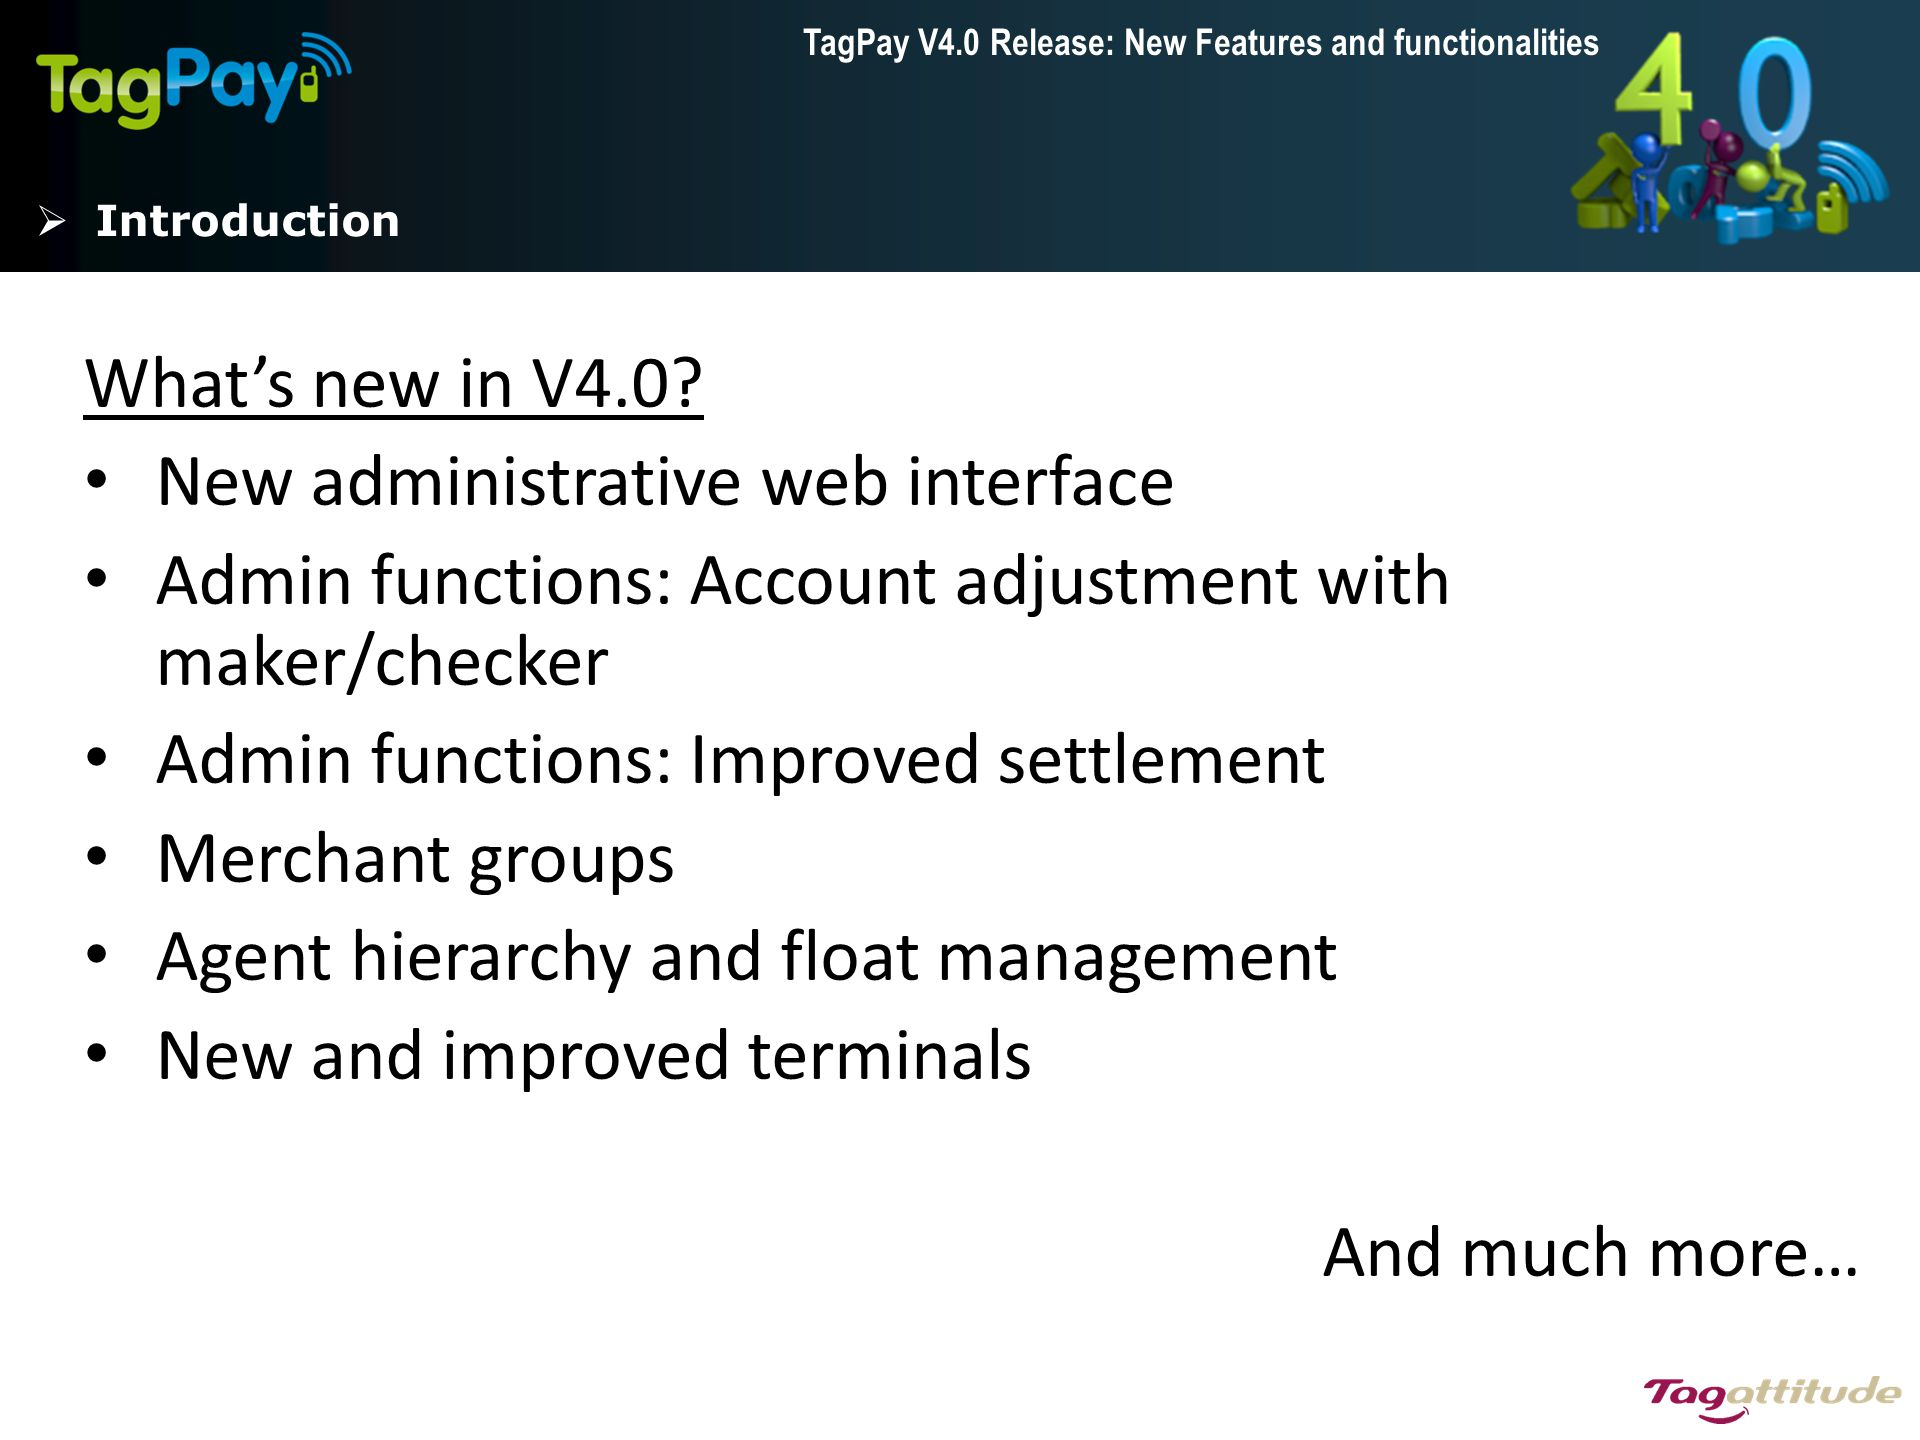 TagPay V4.0 Release: New Features and functionalities Agent hierarchy and float management Example Hierarchy: 3 levels of agent rank Fees based on relative rank: T1  T2: Free T2  T3: T3 pays a fee to T2 T3  T3: Free Group: Local agents 1-3 can only transact with eachother and with Traveling agent 1 Bank branch/head agent Traveling agent 1 Local agent 1 Local agent 2 Local agent 3 Traveling agent 2 Local agent 4 Local agent 5 Traveling agent 3 Local agent 6 Local agent 7 Local agent n…